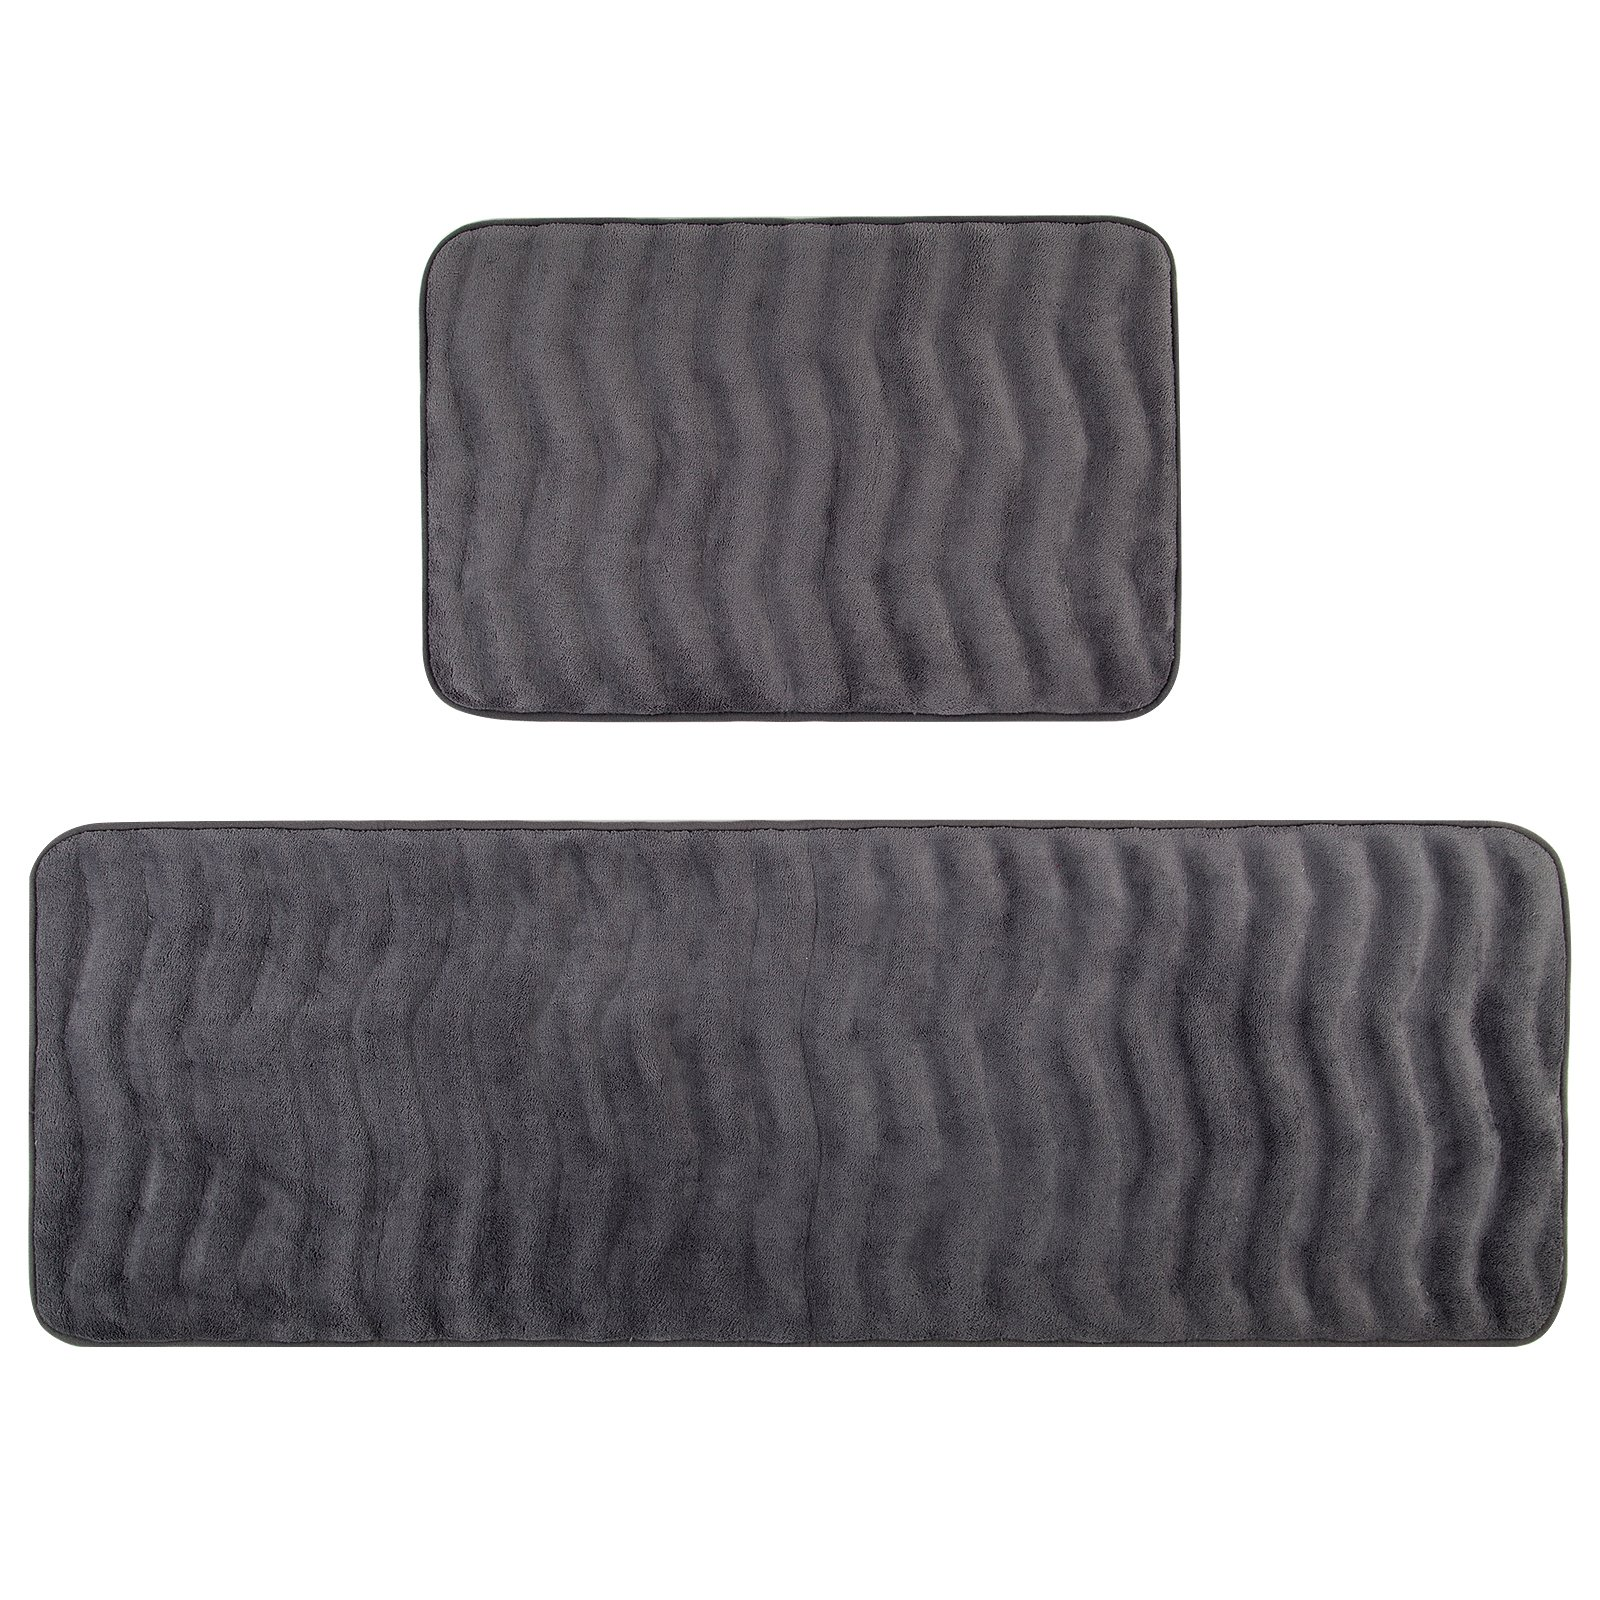 Pauwer Memory Foam Bath Rug Set of 2 Non Slip Long Bath Mat Runner Set (16''x47''and 16''x24'', Grey)